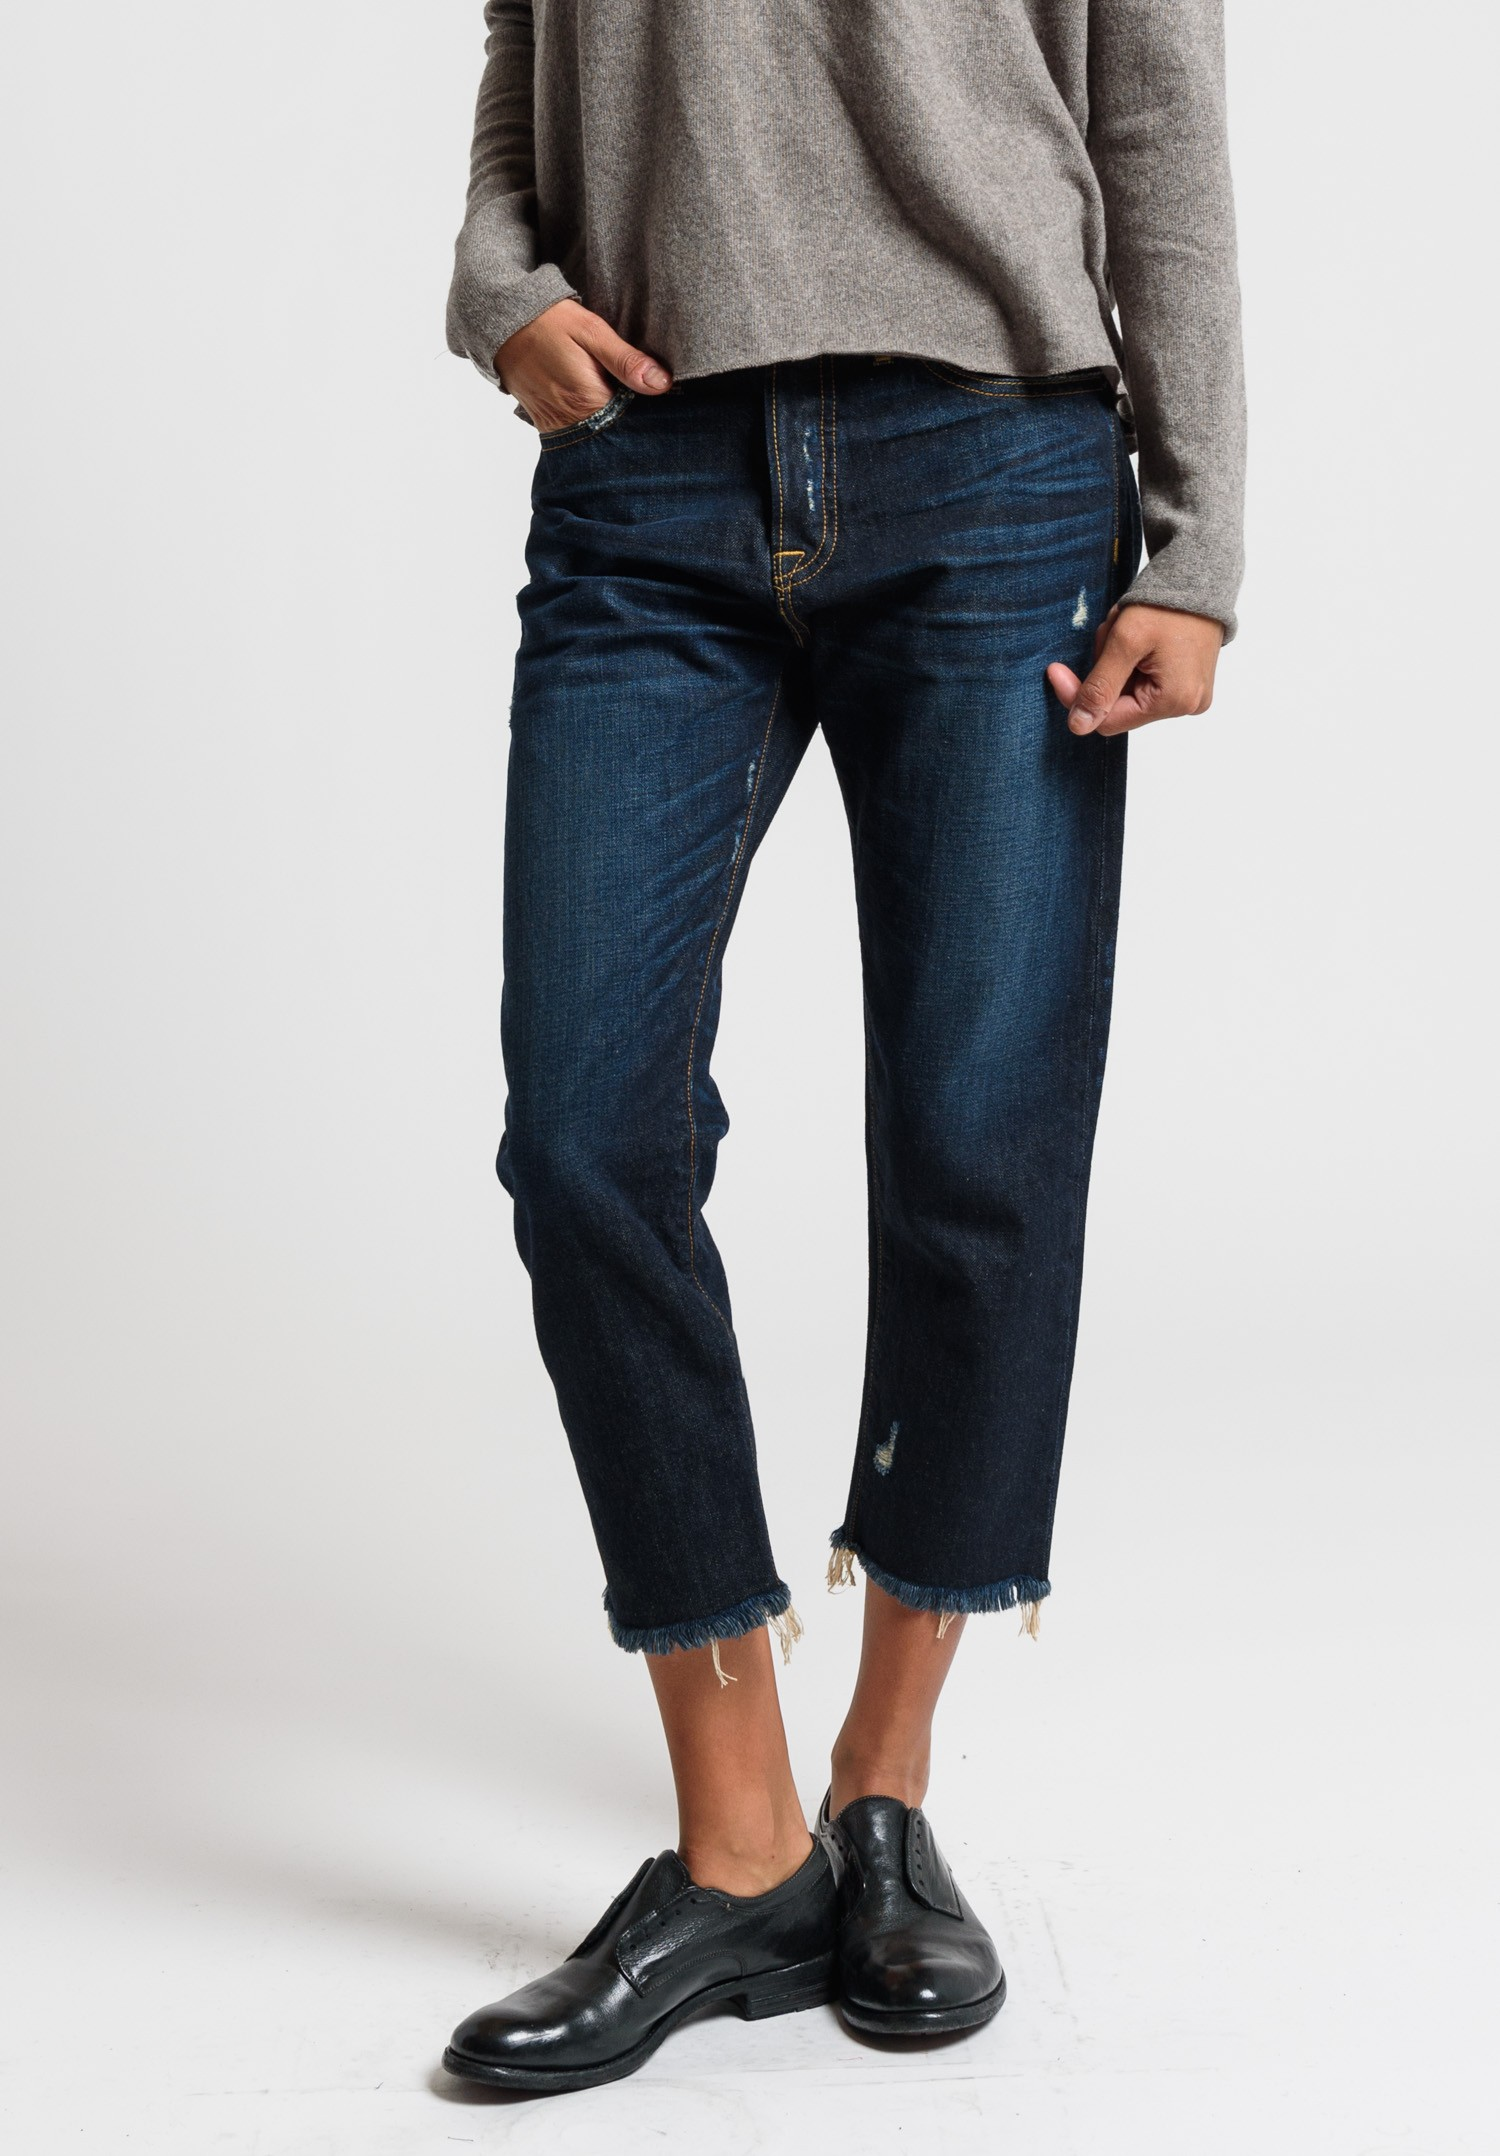 Artisan De Luxe Vic Standard Jeans With Distressed Details